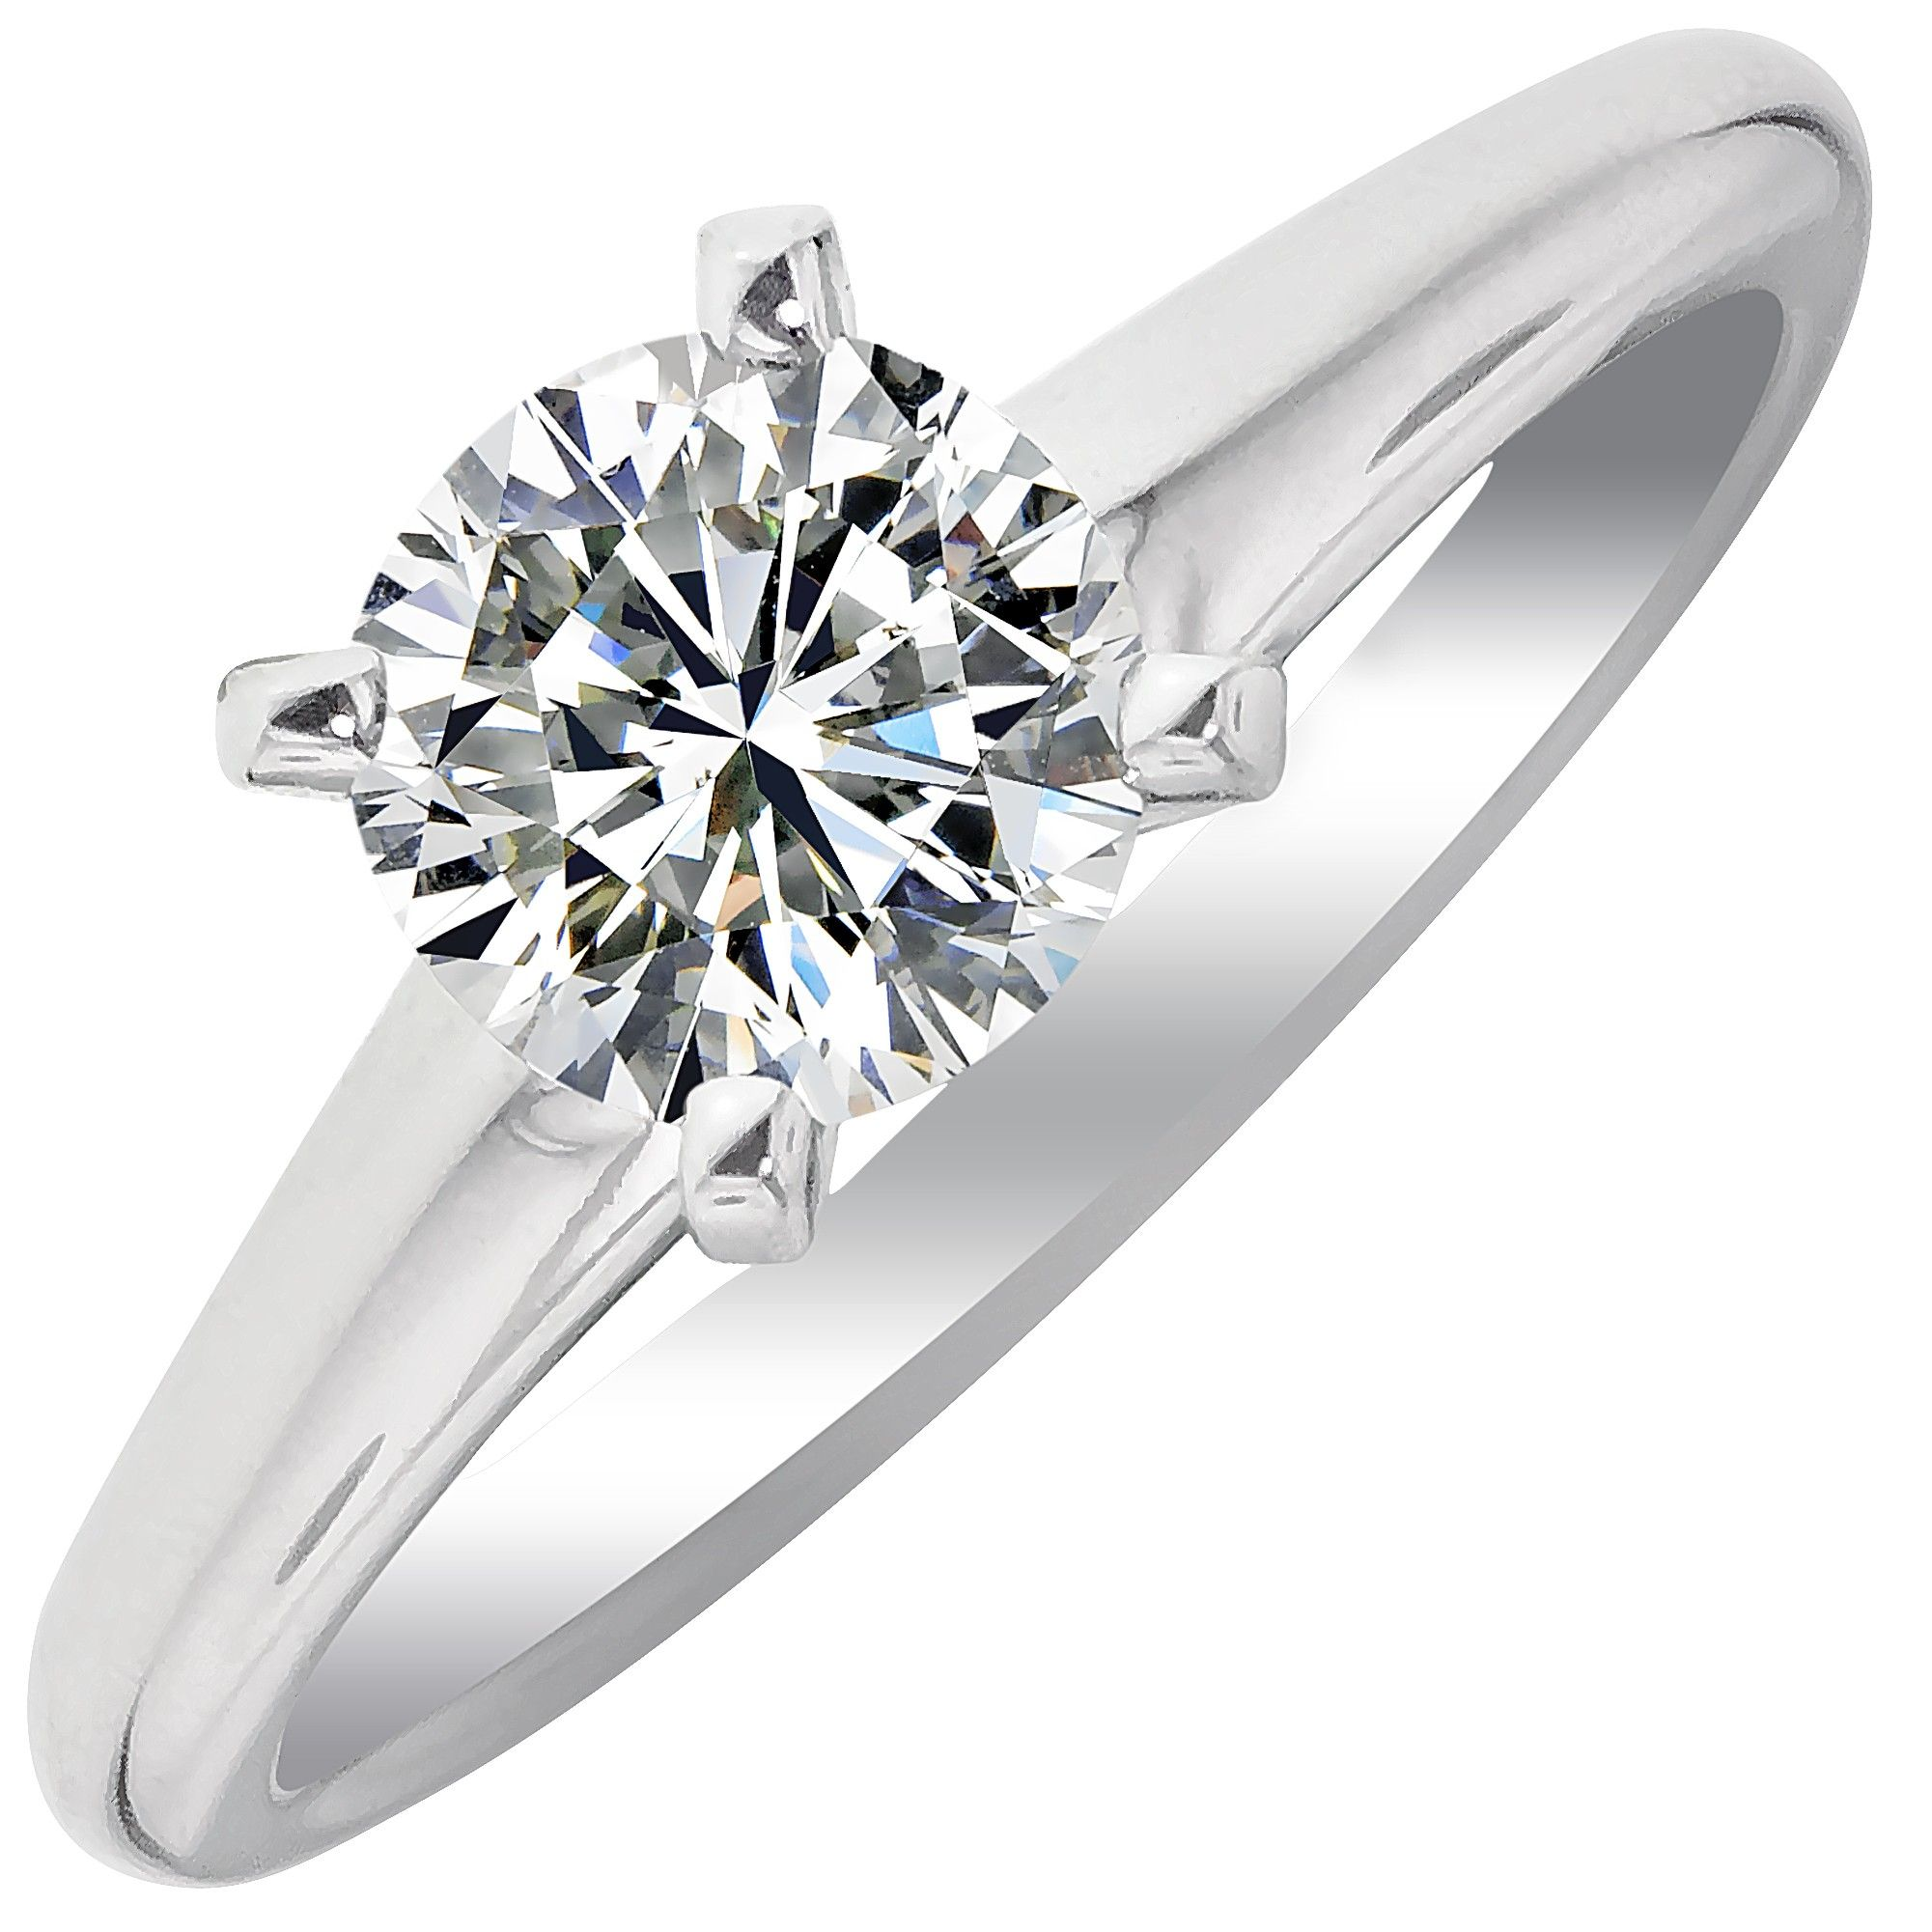 rings at ring firemark for master diamond halo mark carat engagement fire center j princess sale platinum cut jewelry id